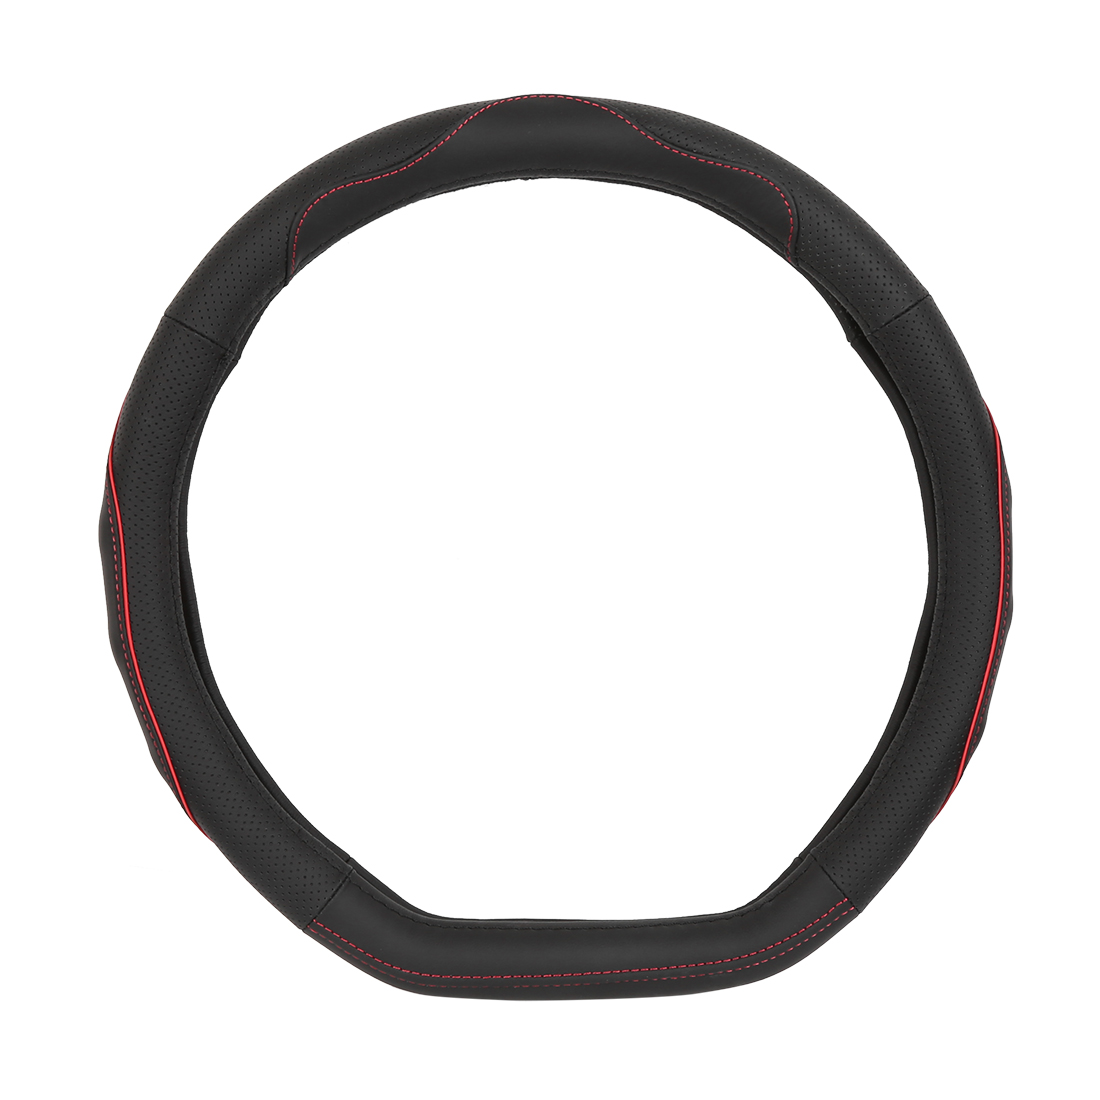 """38cm 15"""" Oval Leather Car Steering Wheel Cover Anti-Slip Protector Black Red"""